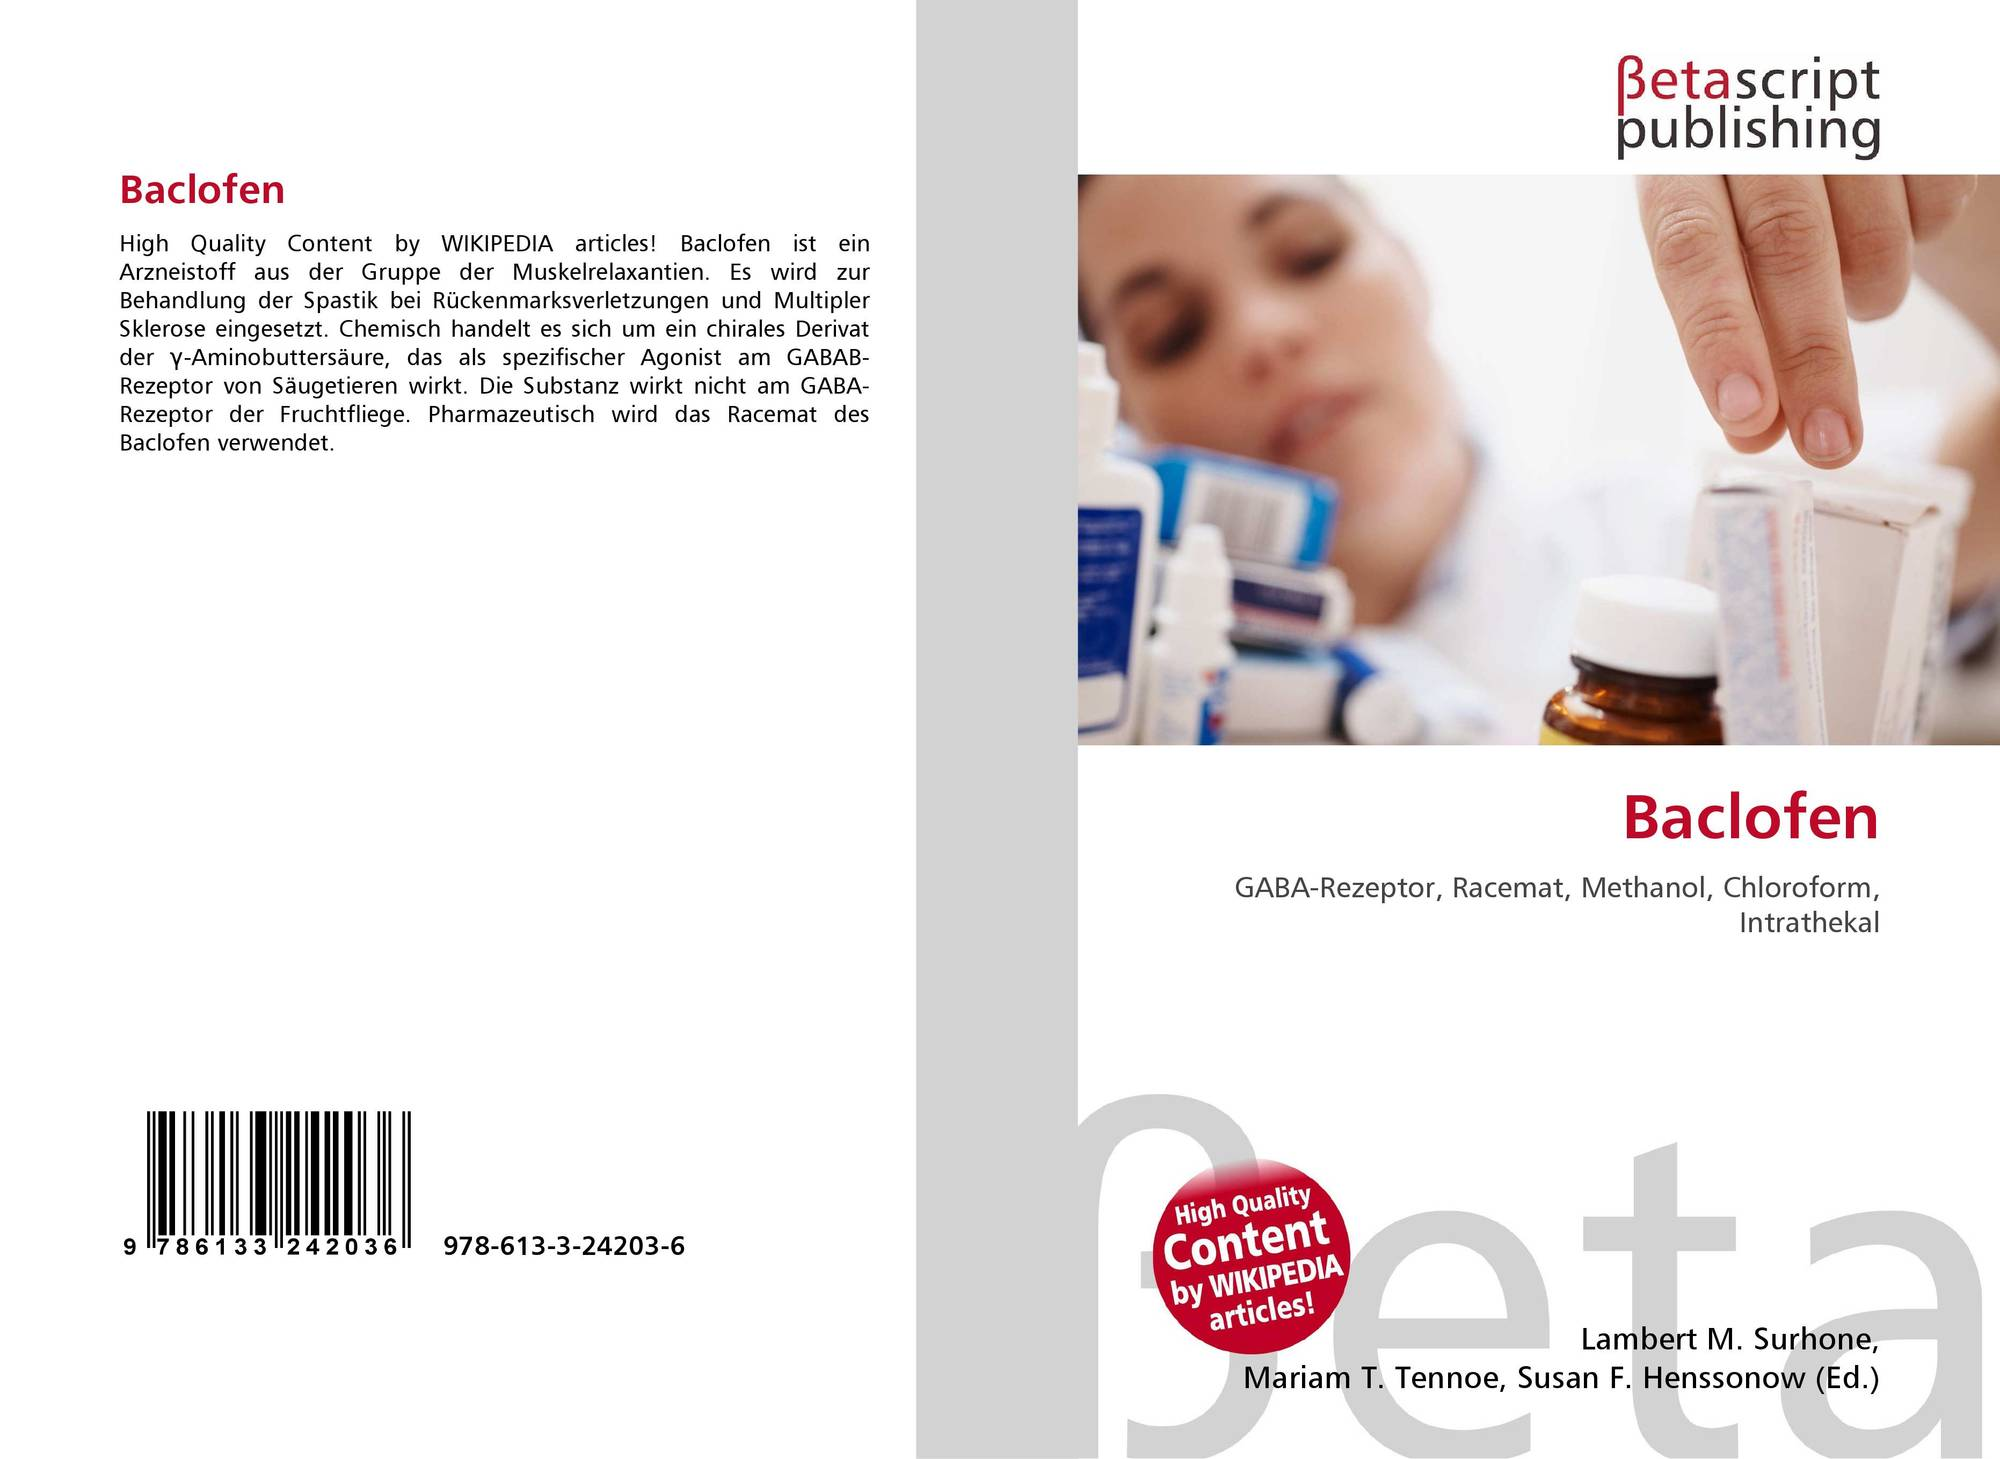 clindamycin and benzoyl peroxide topical gel price